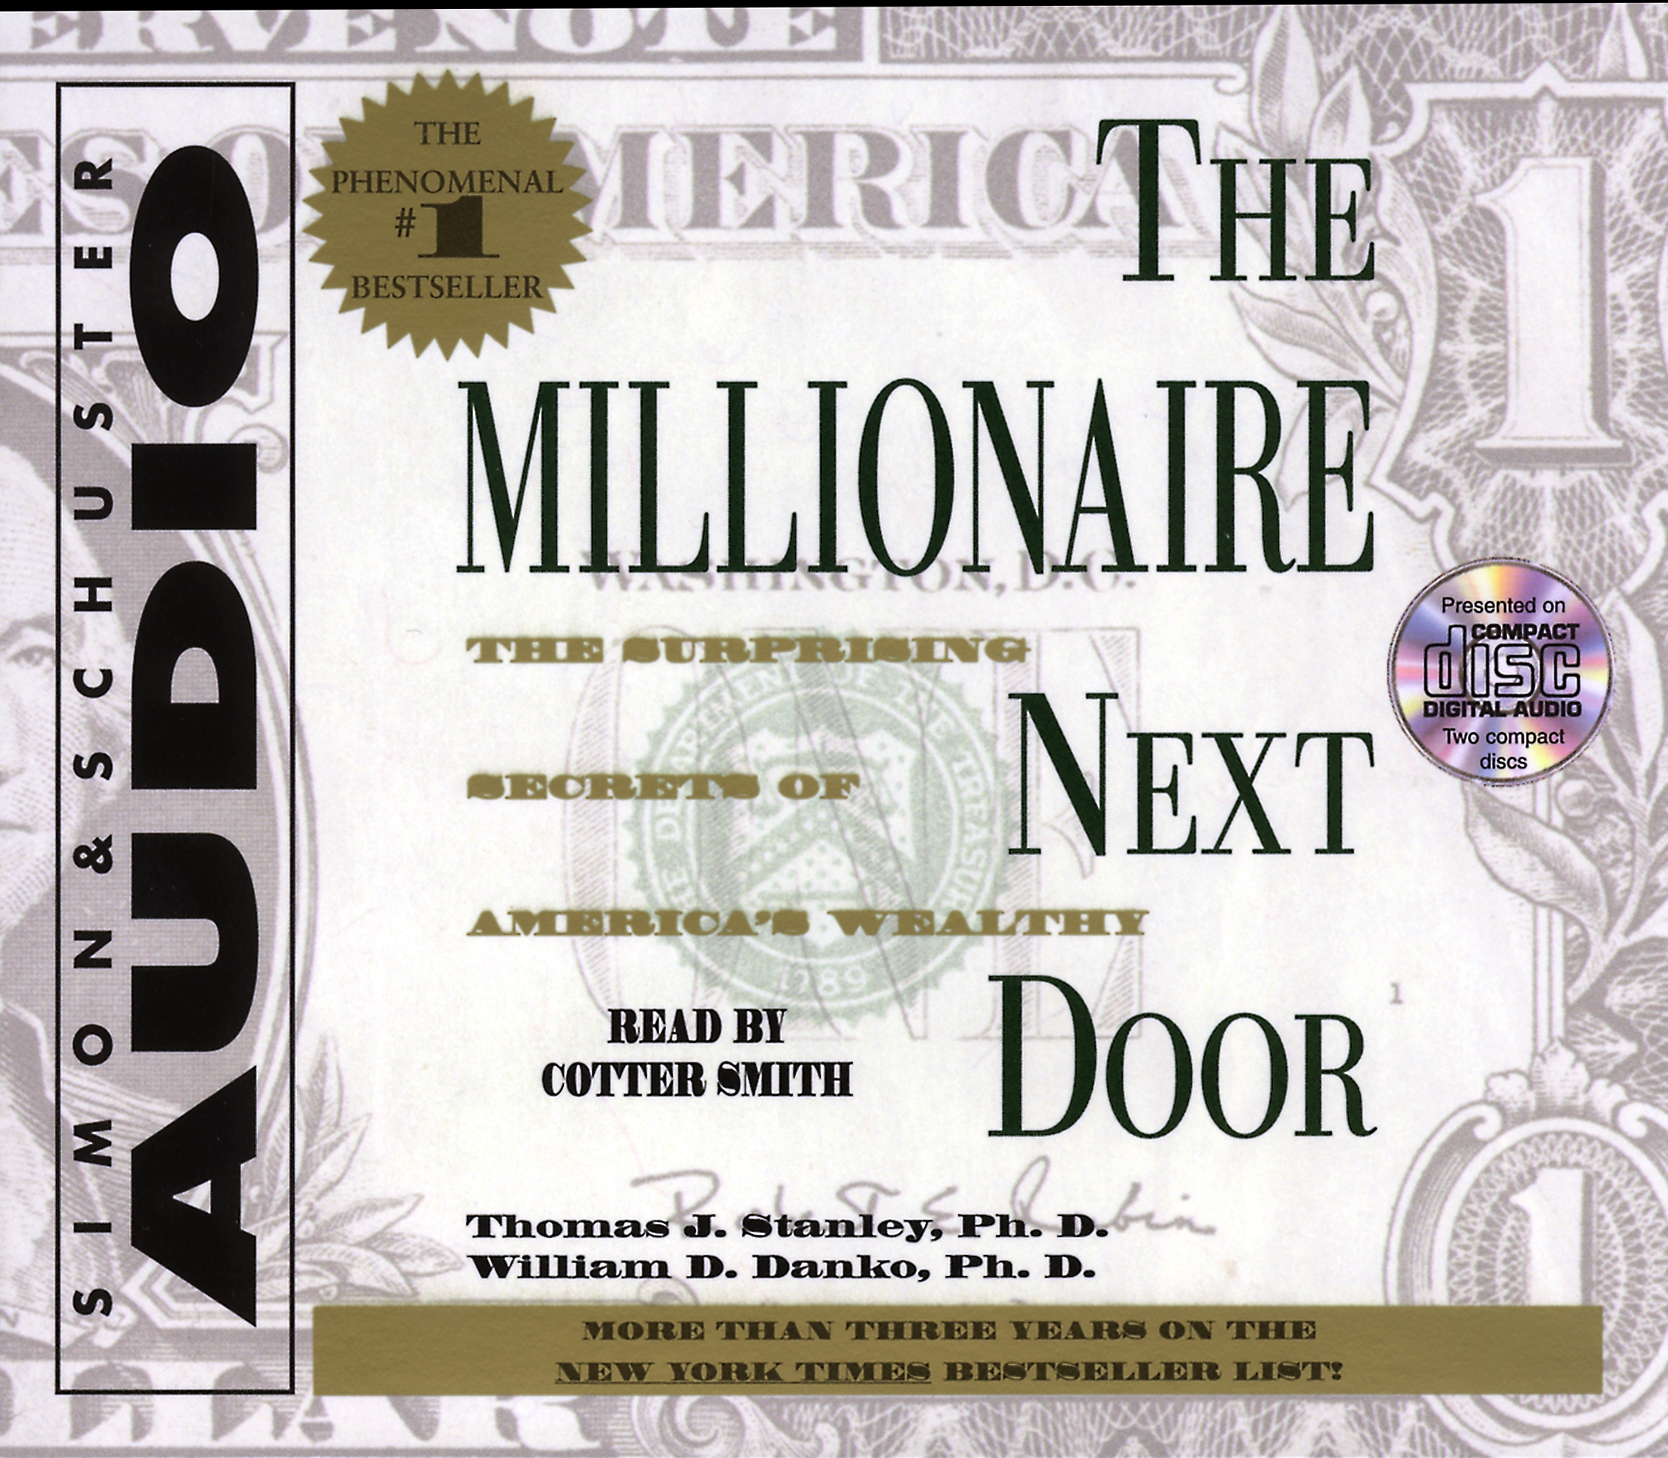 an analysis of the book the millionaire next door by dr thomas j stanley and dr william d danko